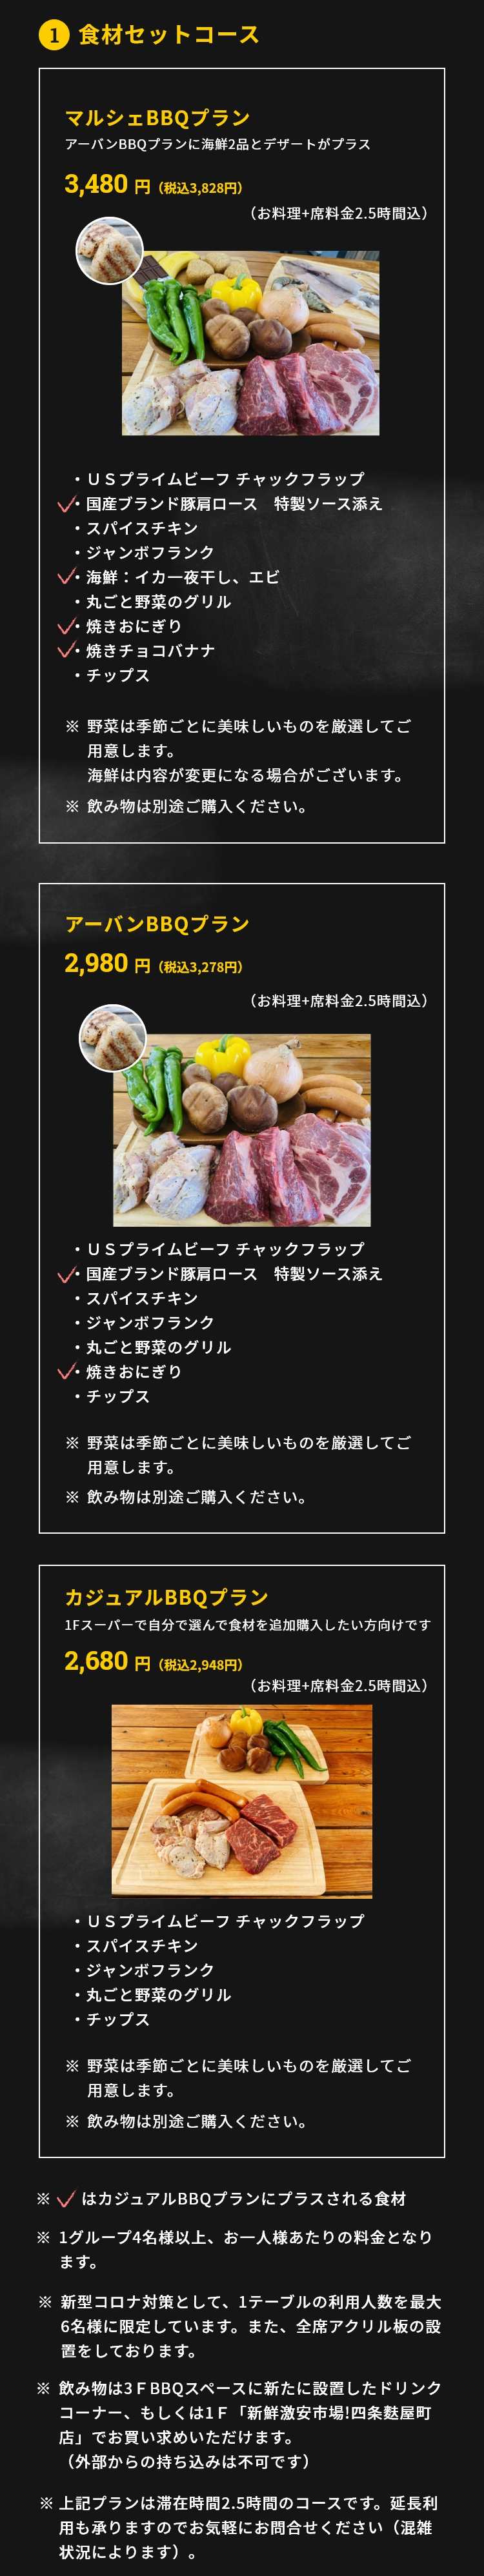 1.Ingredient Set Course Urban BBQ plan 2,980 yen per person (excluding tax). Available from 4 guests. (Foods+2 hrs table fee) ・US Prime beef Chuck flap・Japanese Brand Pork lion with special sauce・Spice chicken・Jumbo sausage・Uncut Vegetable ・Yaki soba・Chips ※About Vegetable:We always prepare season vegetables for you. ※Please buy the drinks separately.Marche BBQ Plan(Urban BBQ plan plus 2 plates of seafood and dessert) 3,480 yen per person (excluding tax).Available from 4 guests.(Foods+2 hrs table fee) ・US Prime beef Chuck flap・Japanese Brand Pork lion with special sauce・Spice chicken・Jumbo sausage・Seafood: Dried cuttlefish, Shrimp・Uncut Vegetable ・Yaki soba・Grilled Chocolate Banana ・Chips ※We always prepare season vegetables for you. And the seafood may change base on situation. ※Please buy the drinks separately. ※You can purchase drinks and extra ingredients on the 1st & 2nd floor [Fresh discount market! Shijo Fuyacho store].(Please do not bring drinks or foods from outside)※Above plans are of 2 hours duration. If you want to extend it, please contact us freely.(The answer depends on congestion)